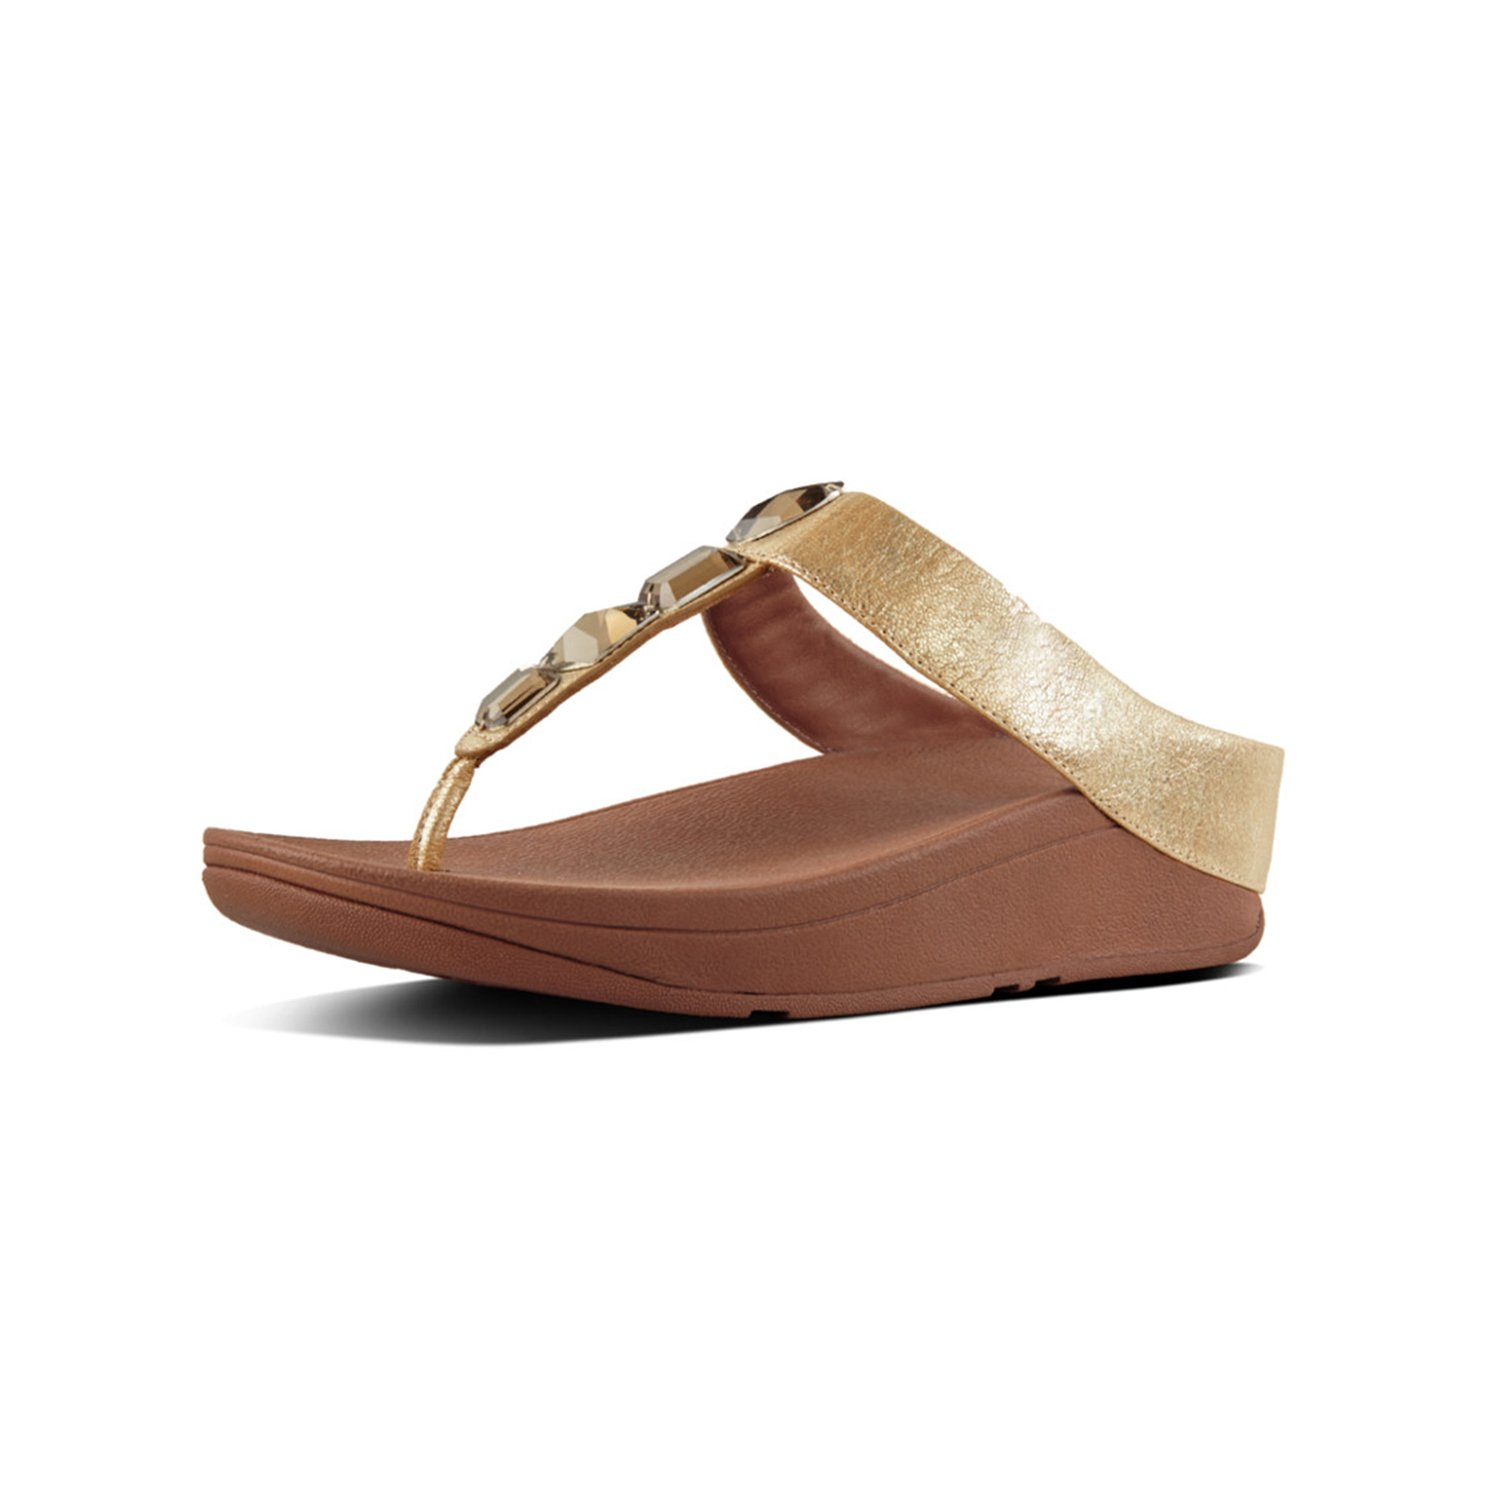 94e08254389efb FitFlop Women s ROKA Toe-Thong Sandals-Leather Flip-Flop